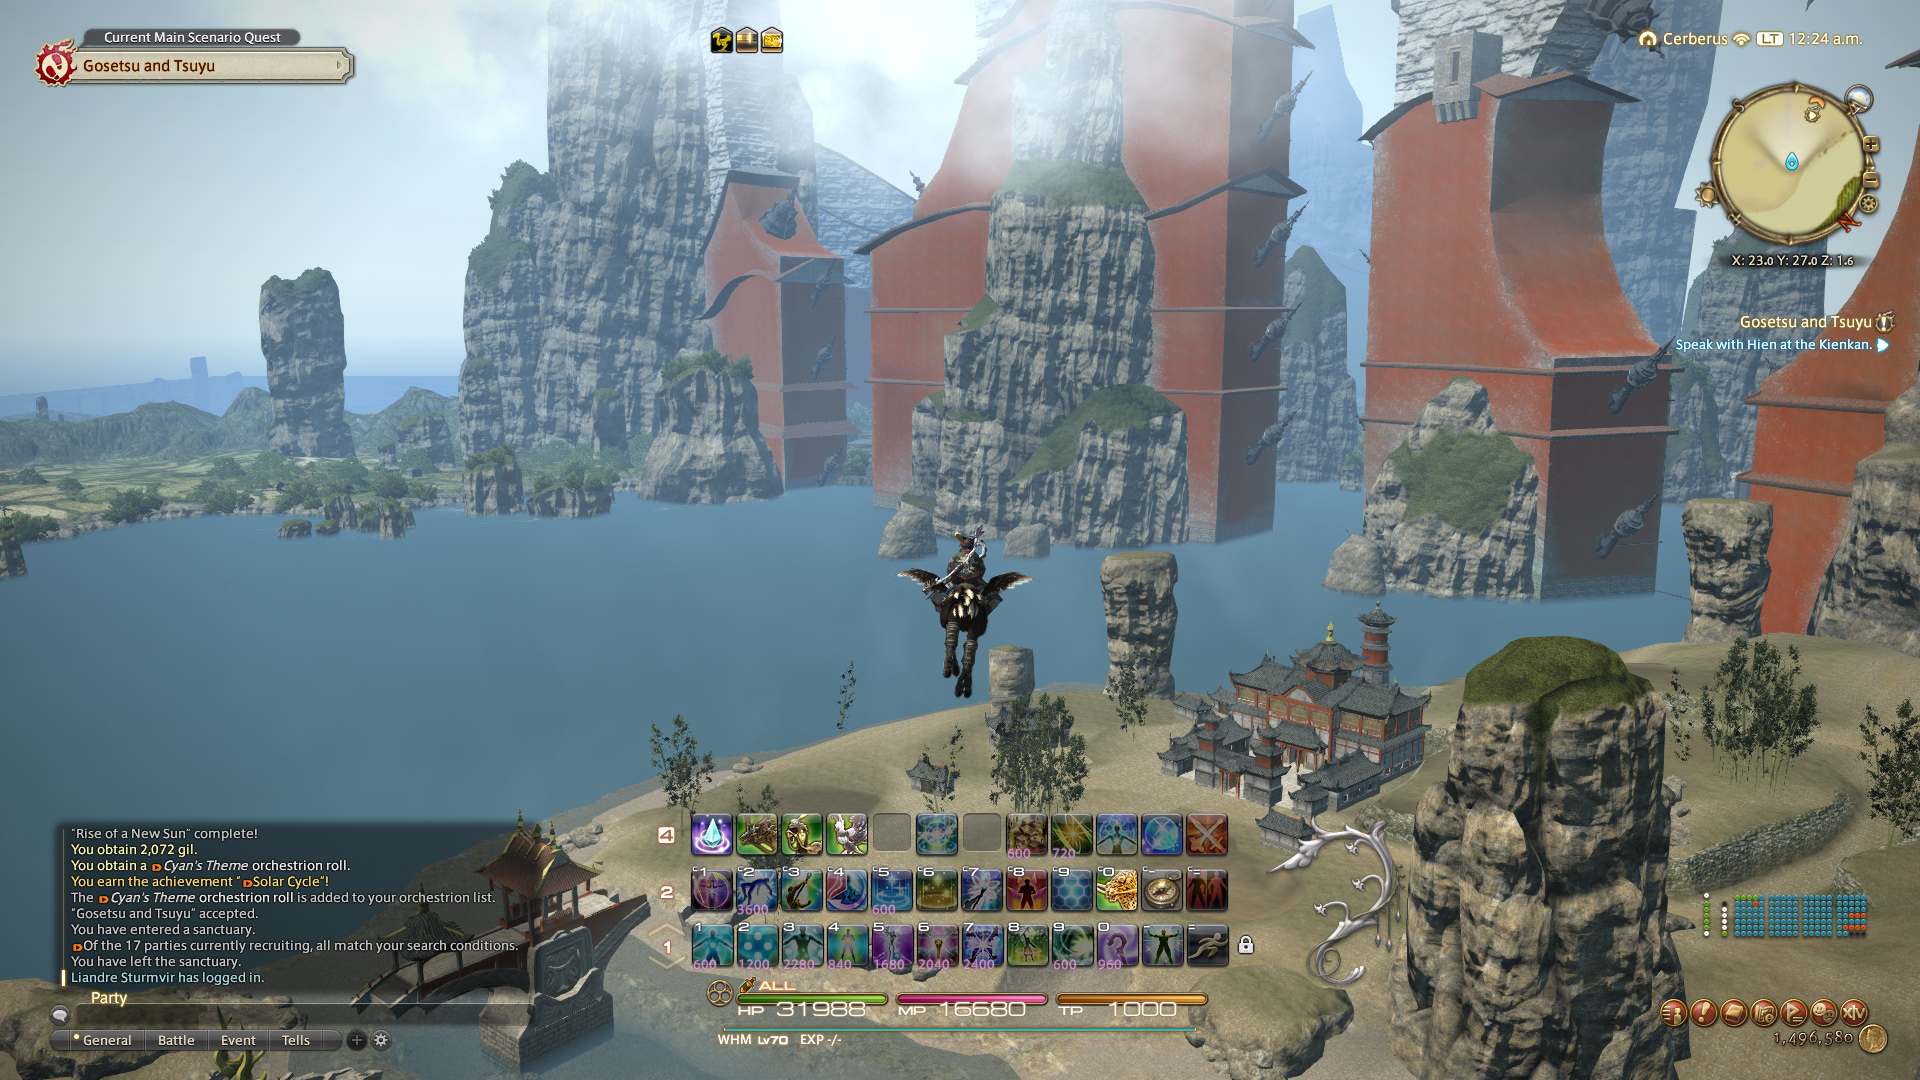 Final Fantasy XIV - Returning to Eorzea 6 Years Later, The